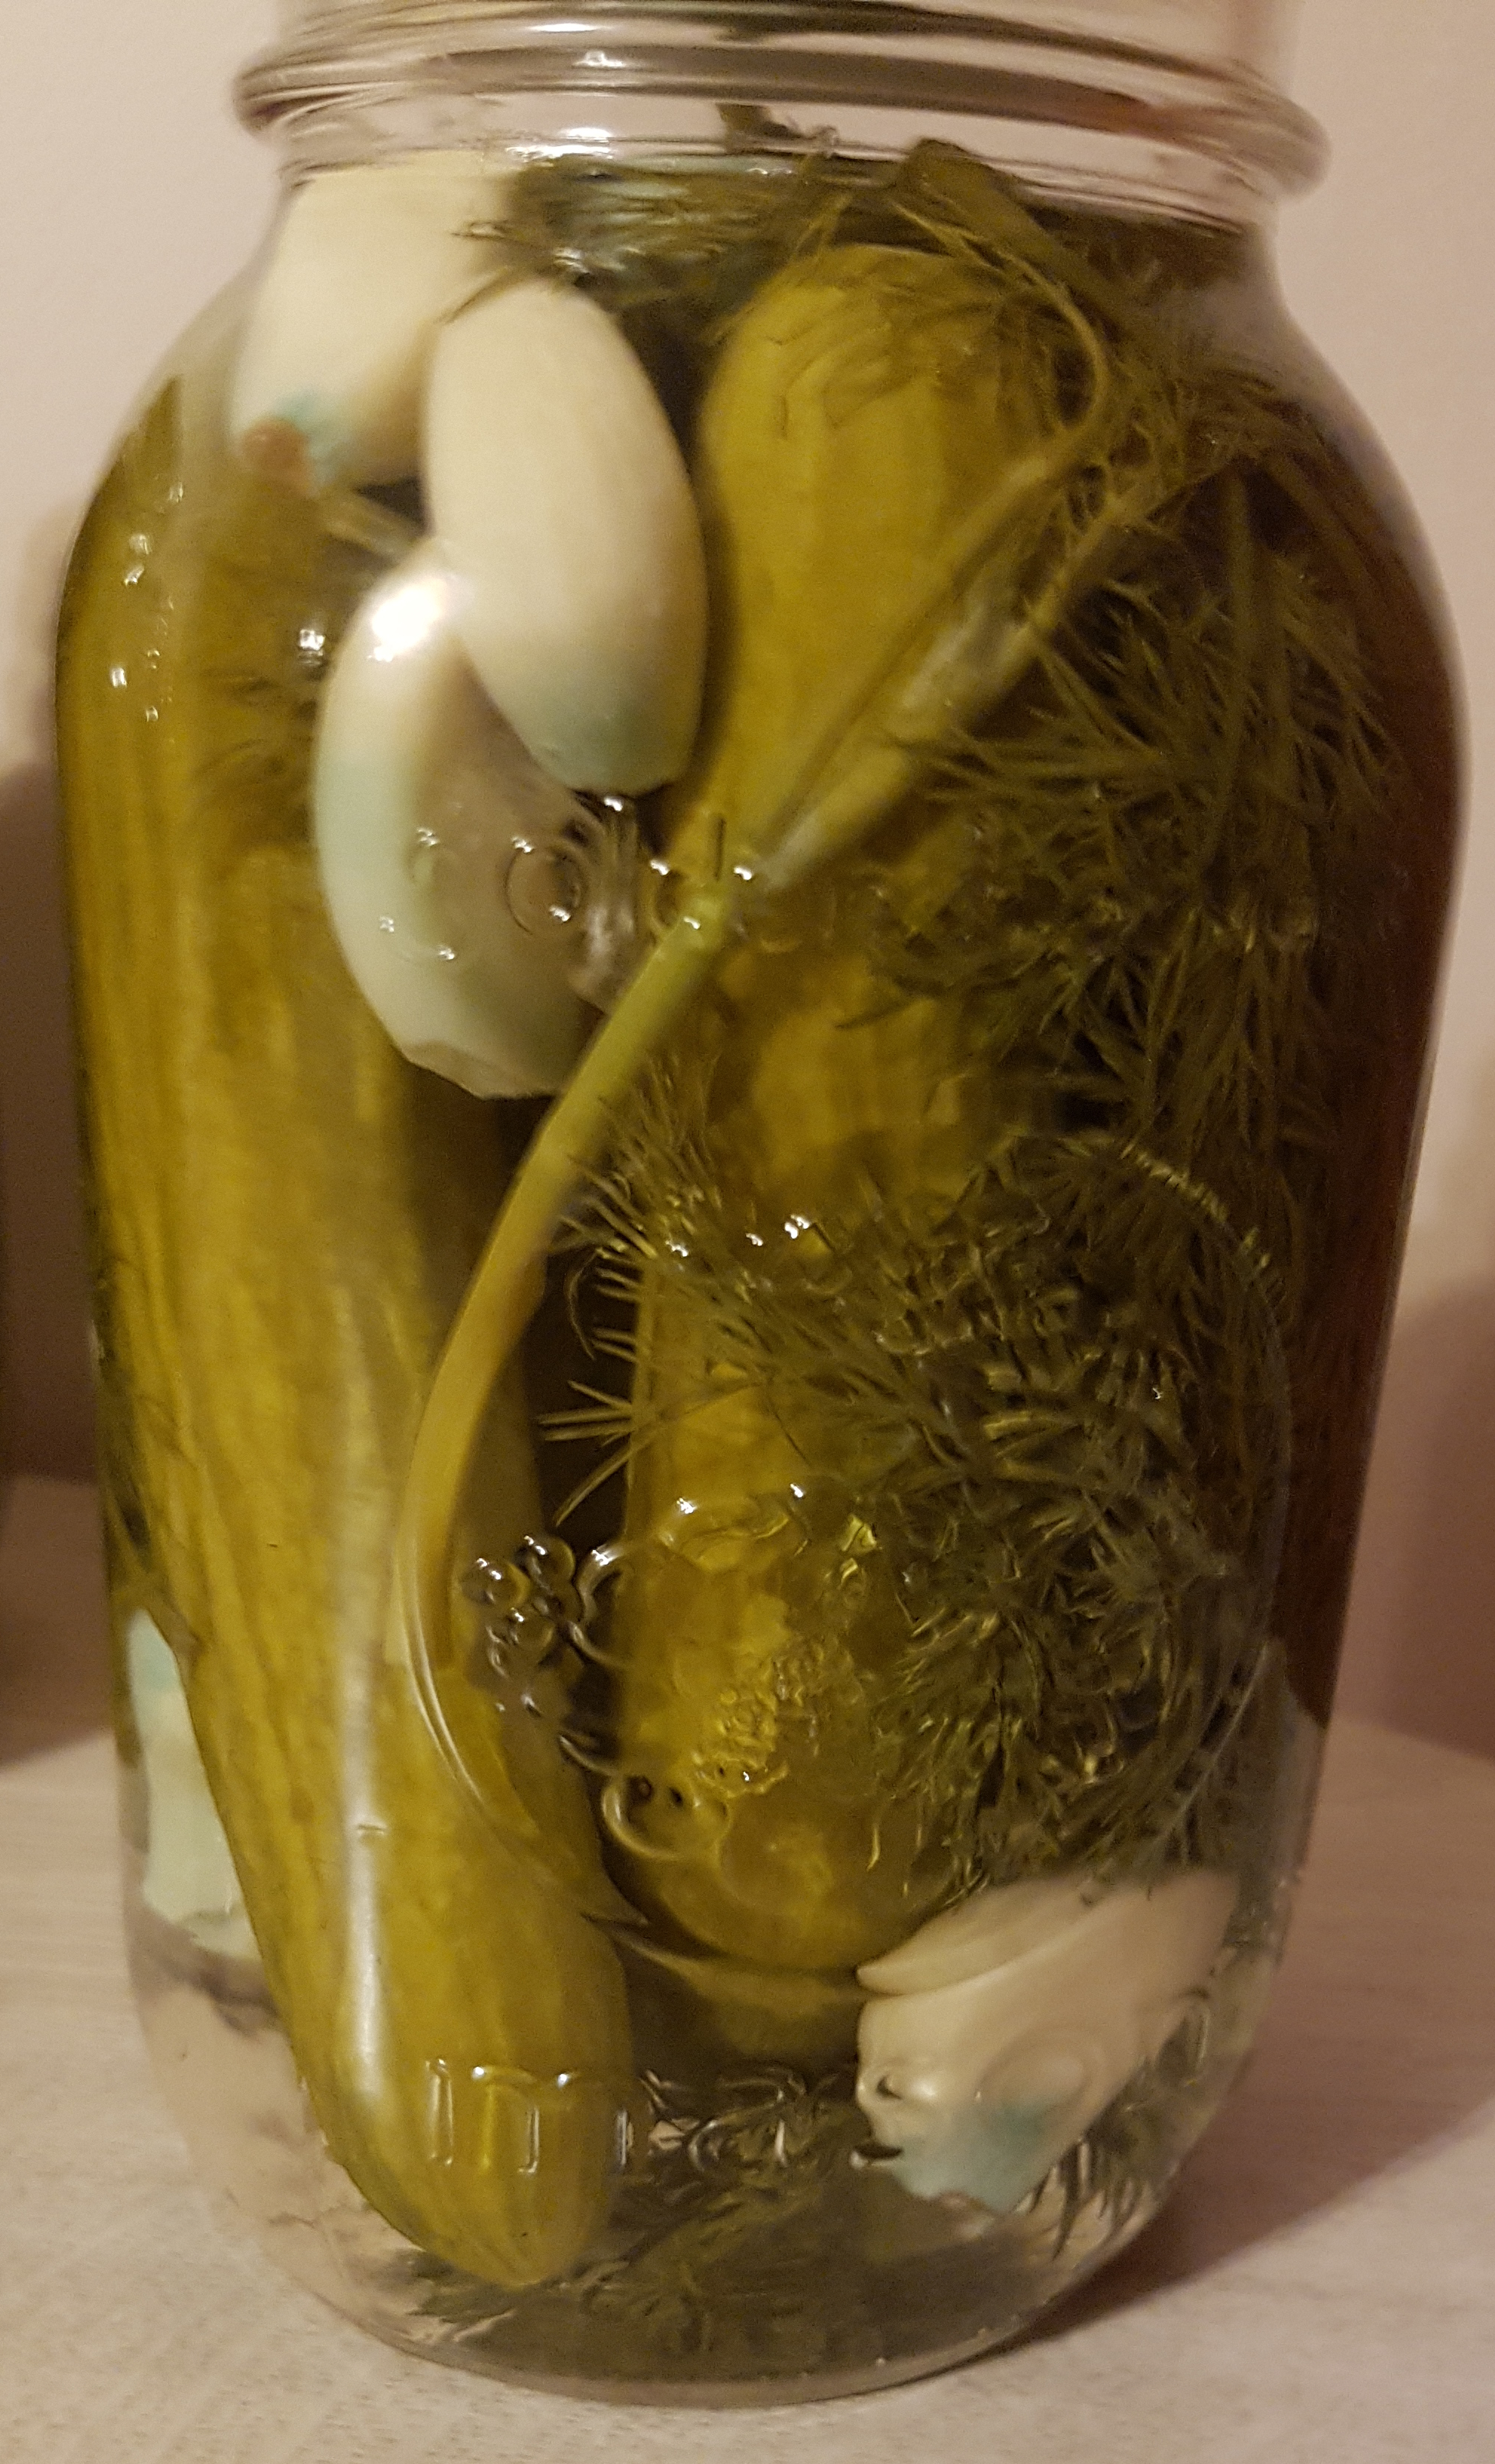 Clear glass jar filled with cucumbers, dill, garlic, and vinegar.